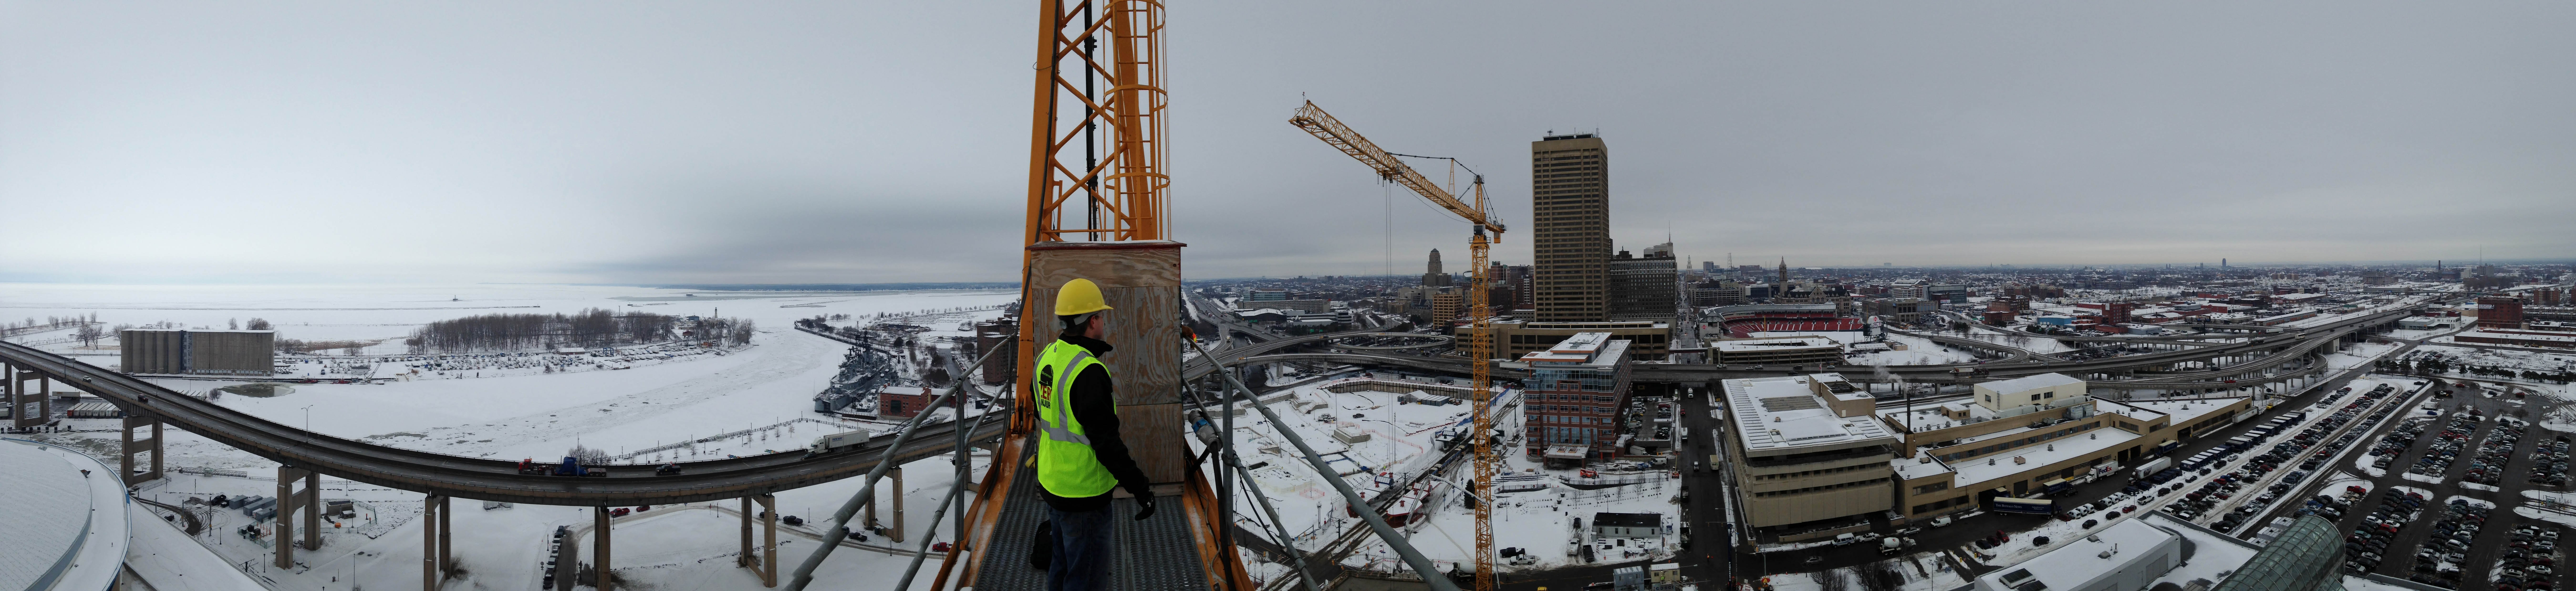 Construction all around can be seen in this panorama of downtown from the tower crane at the HarborCenter construction site.